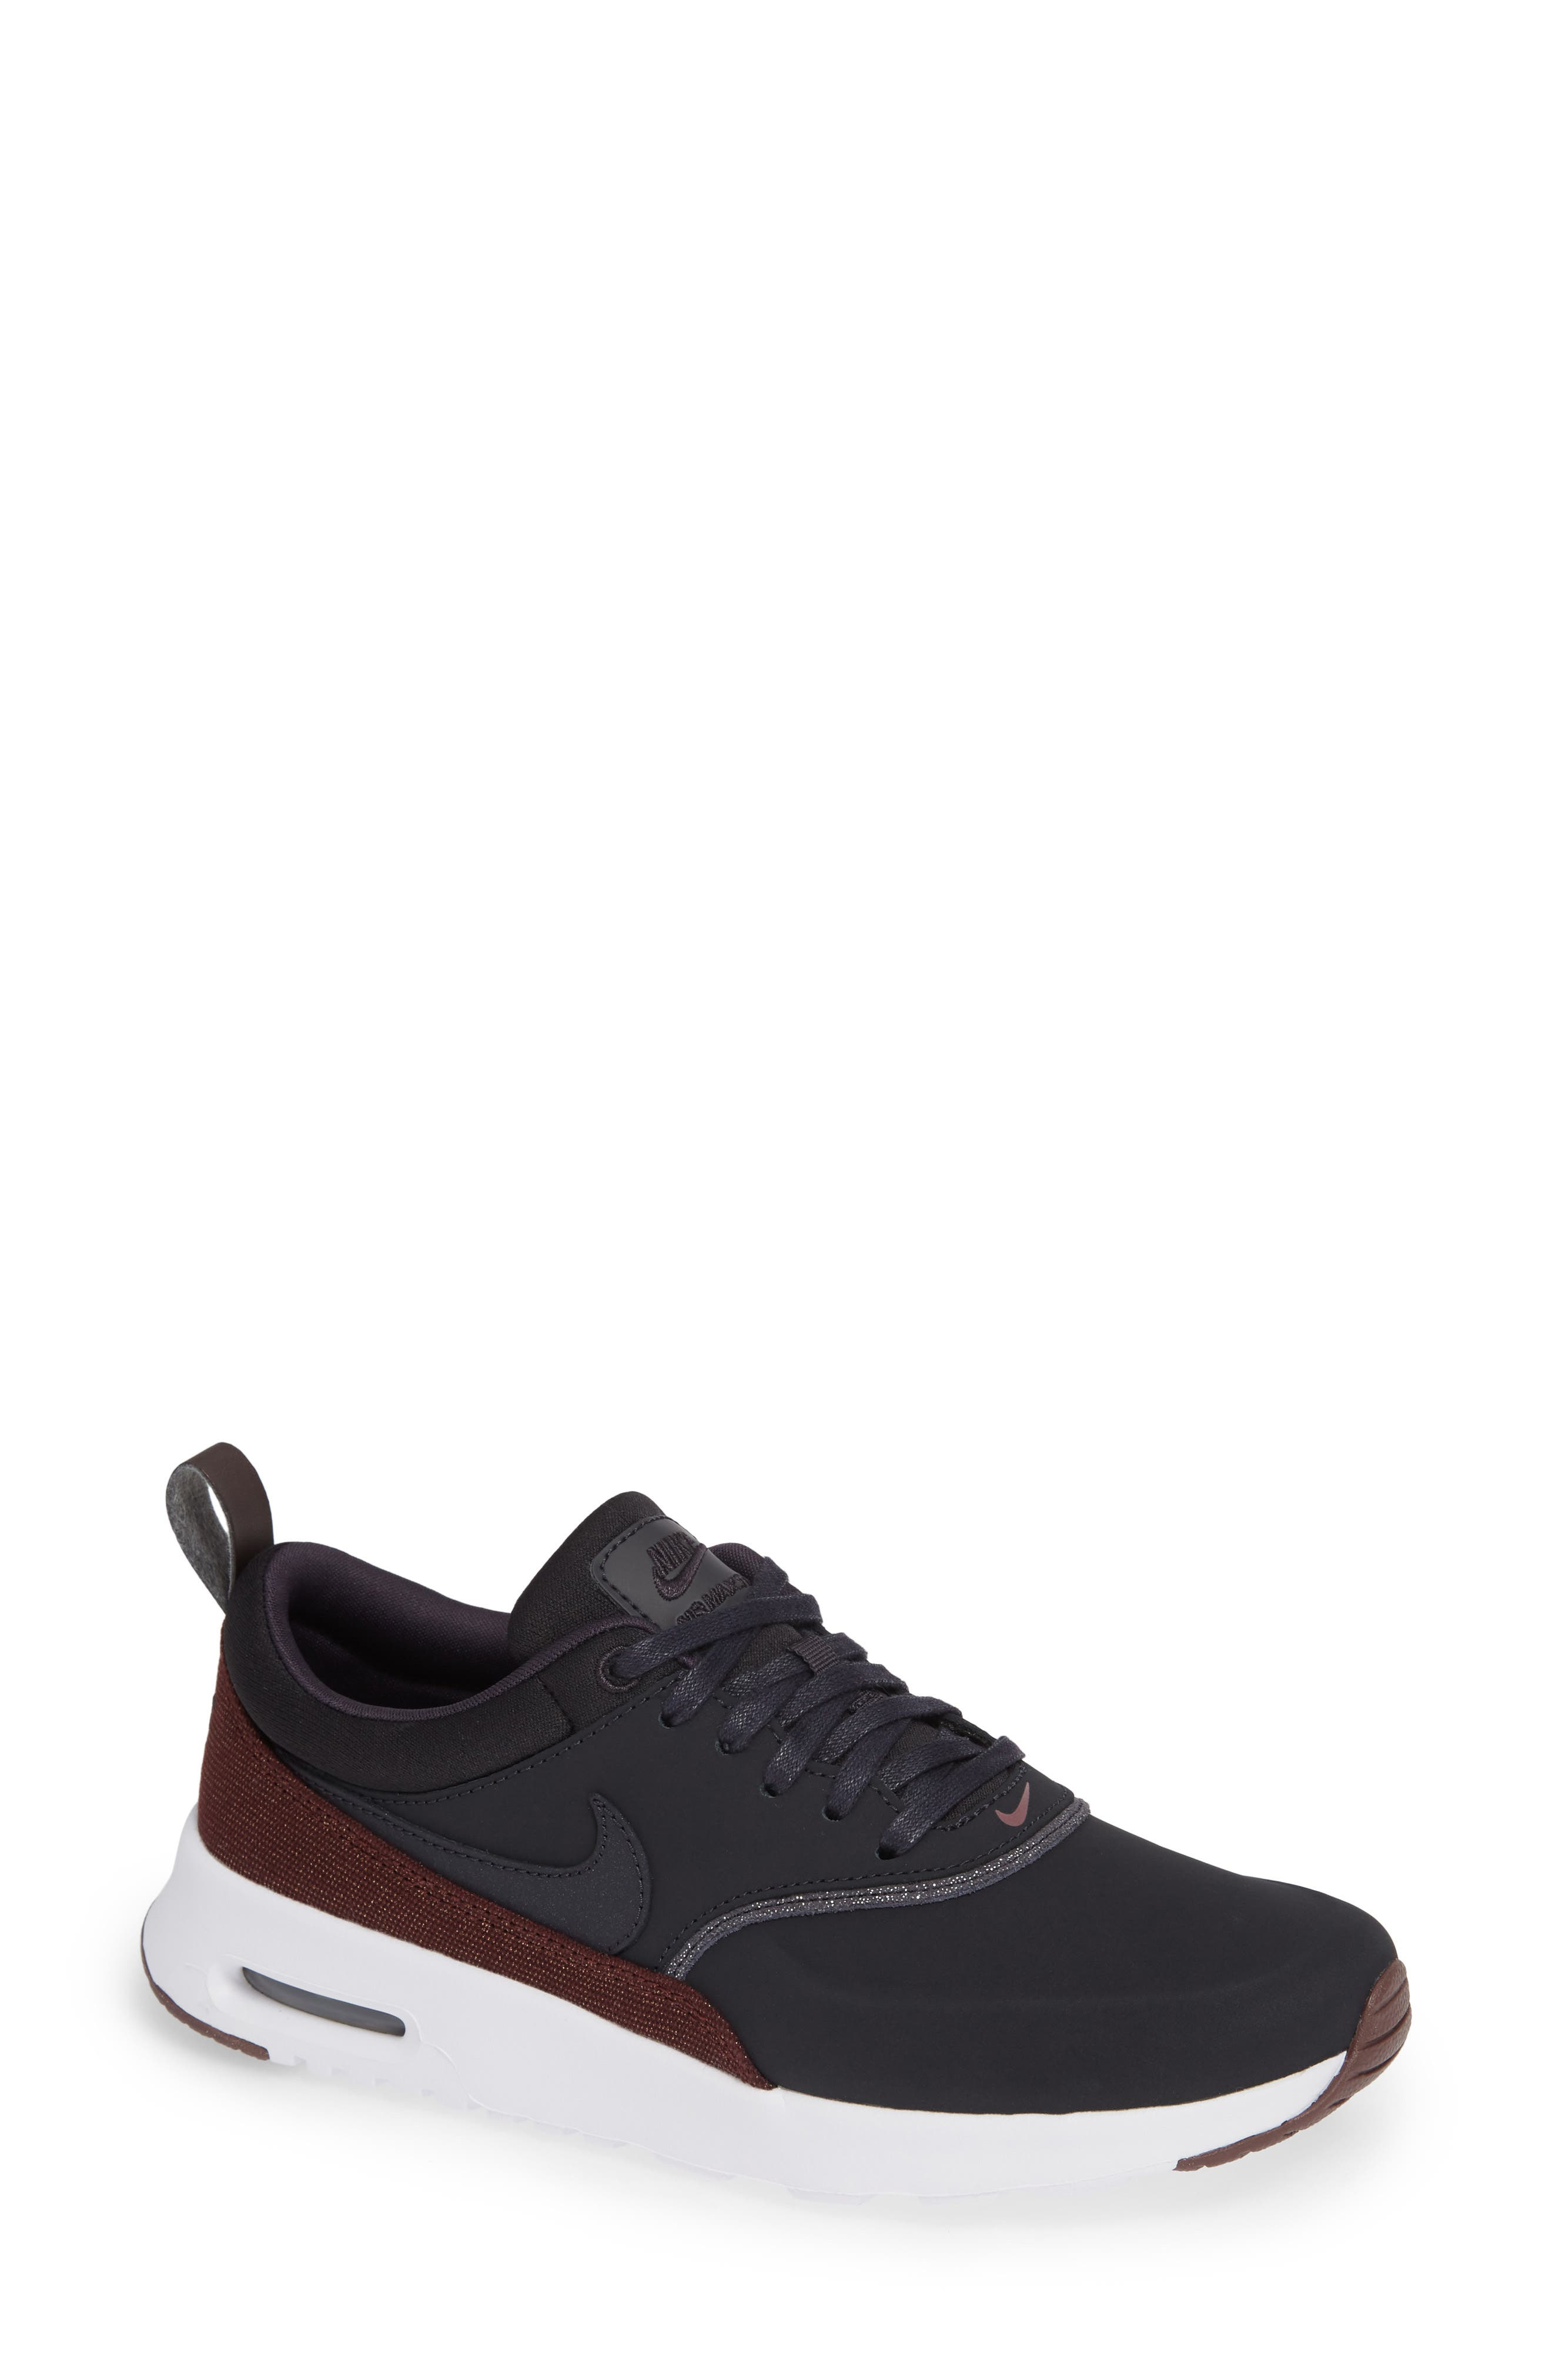 Air Max Thea Sneaker,                             Main thumbnail 1, color,                             OIL GREY/ OIL GREY/ MAHOGANY